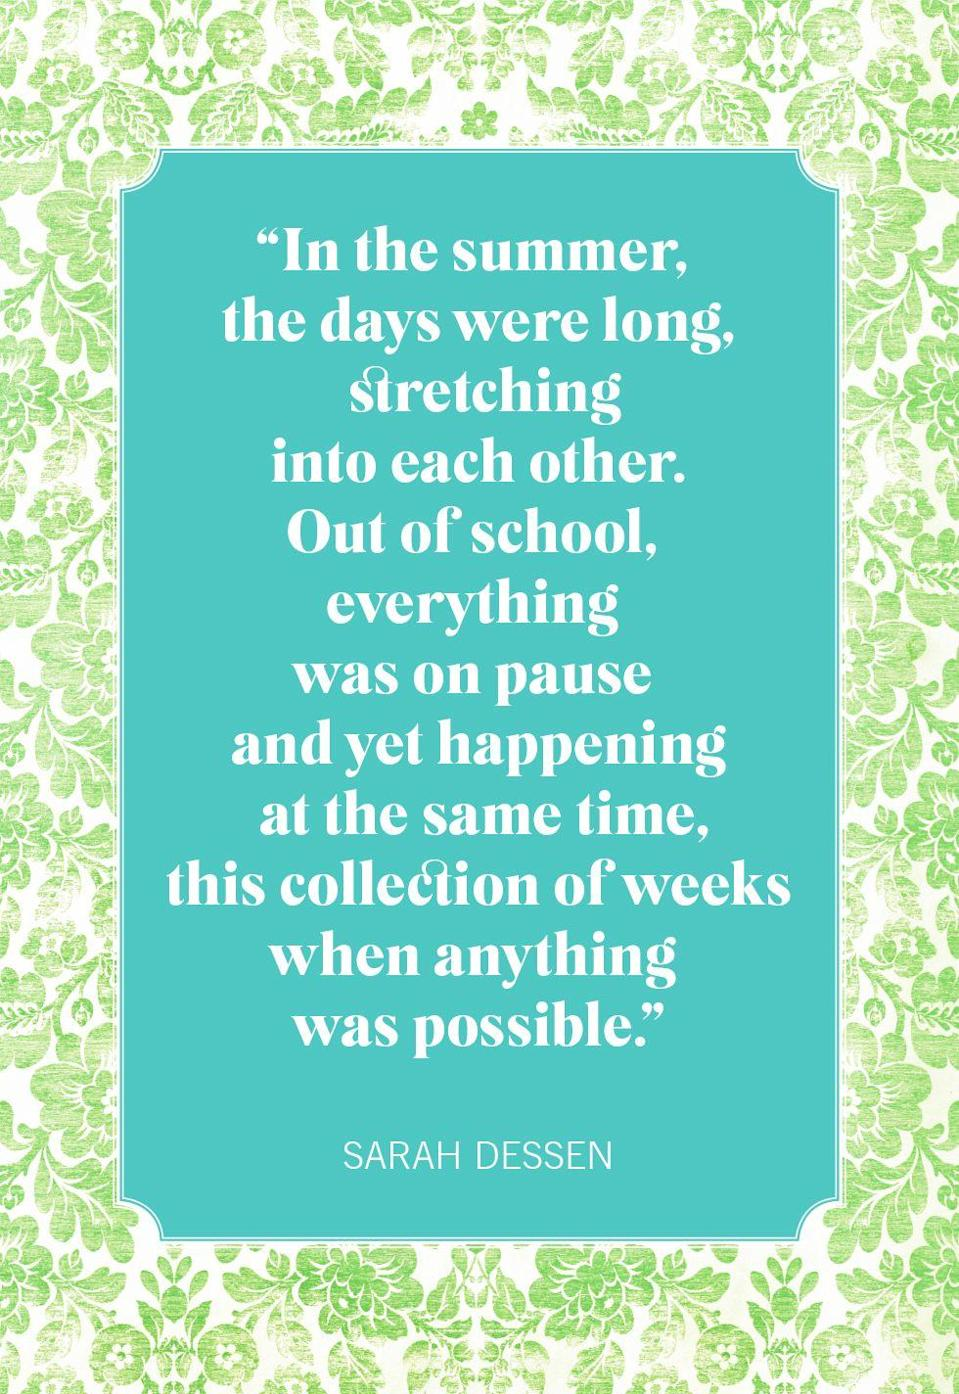 """<p>""""In the summer, the days were long, stretching into each other. Out of school, everything was on pause and yet happening at the same time, this collection of weeks when anything was possible.""""</p>"""